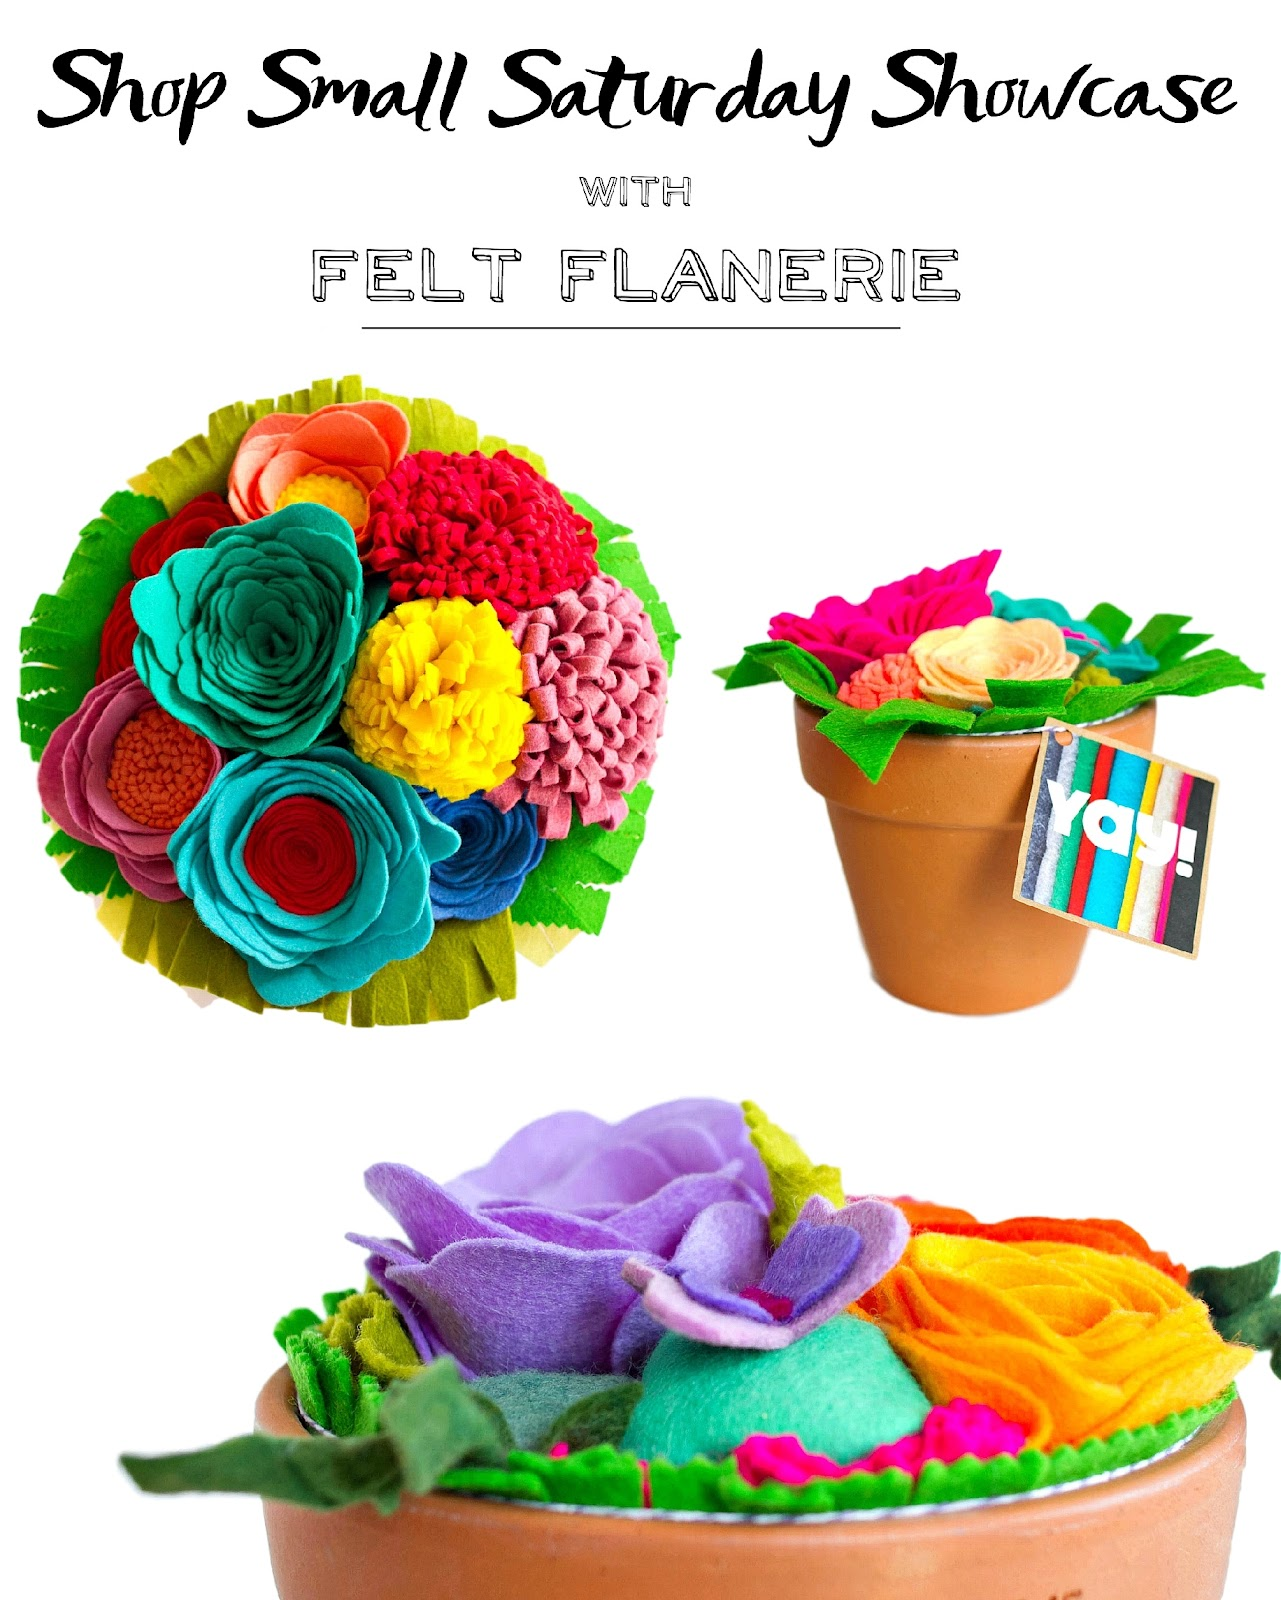 Felt Flanerie feature + GIVEAWAY and promo on Shop Small Saturday Showcase at Diane's Vintage Zest!  #shopsmall